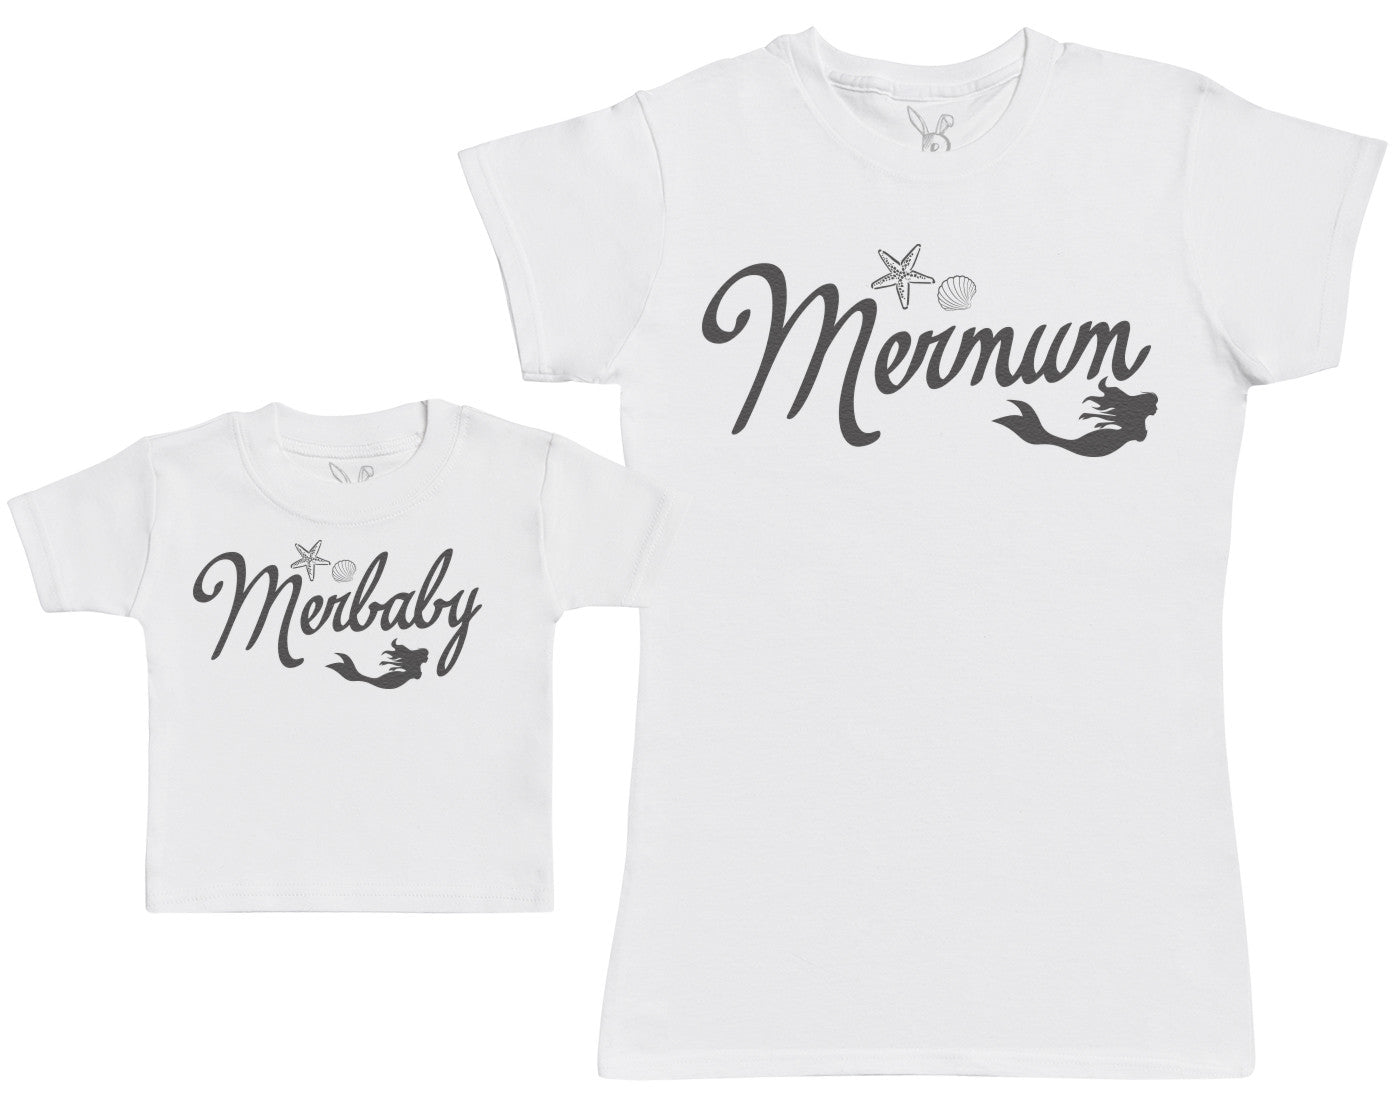 Merbaby - Baby Gift Set with Baby T-Shirt & Mother's T-Shirt